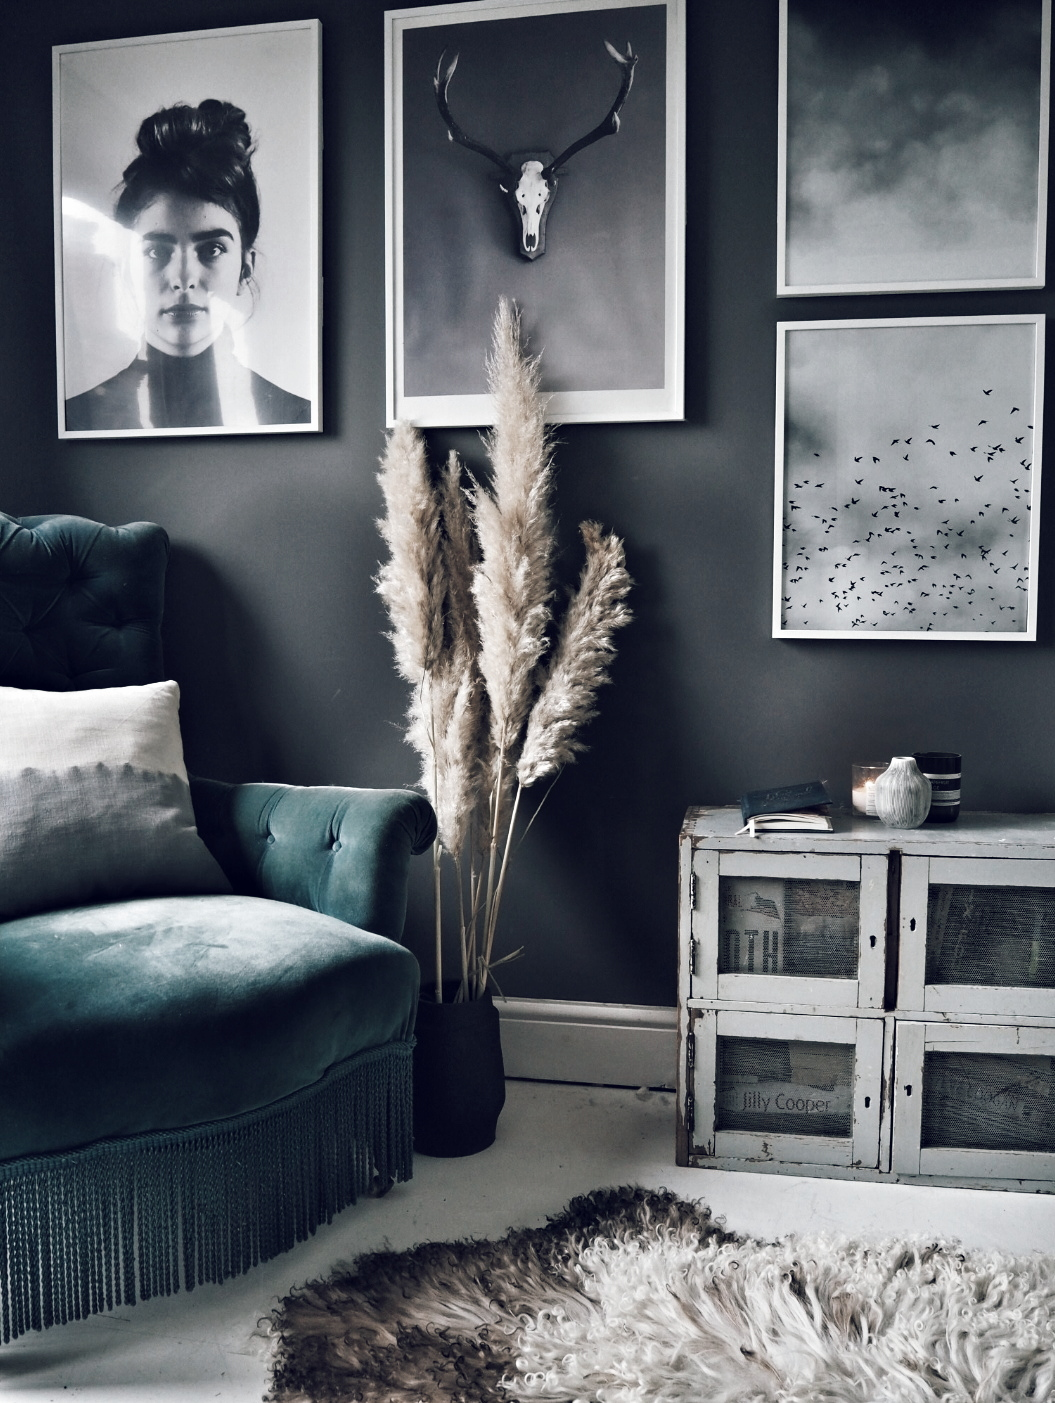 I added a monochrome gallery wall and armchair to this corner to create a separate sitting area within the room